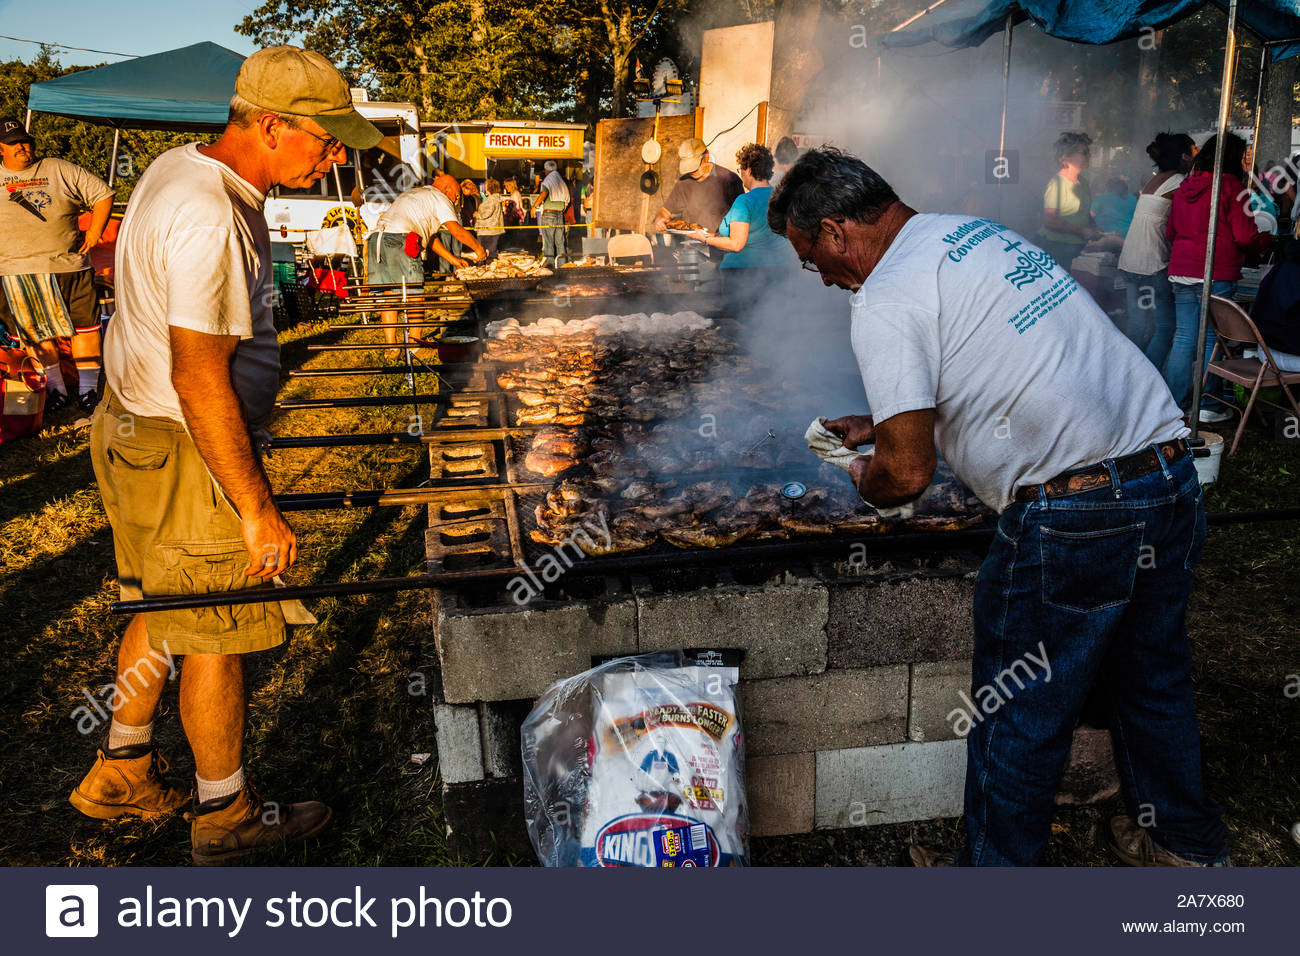 Haddam Neck Fair 2020.Goat Stock Photos Goat Stock Images Page 2 Alamy